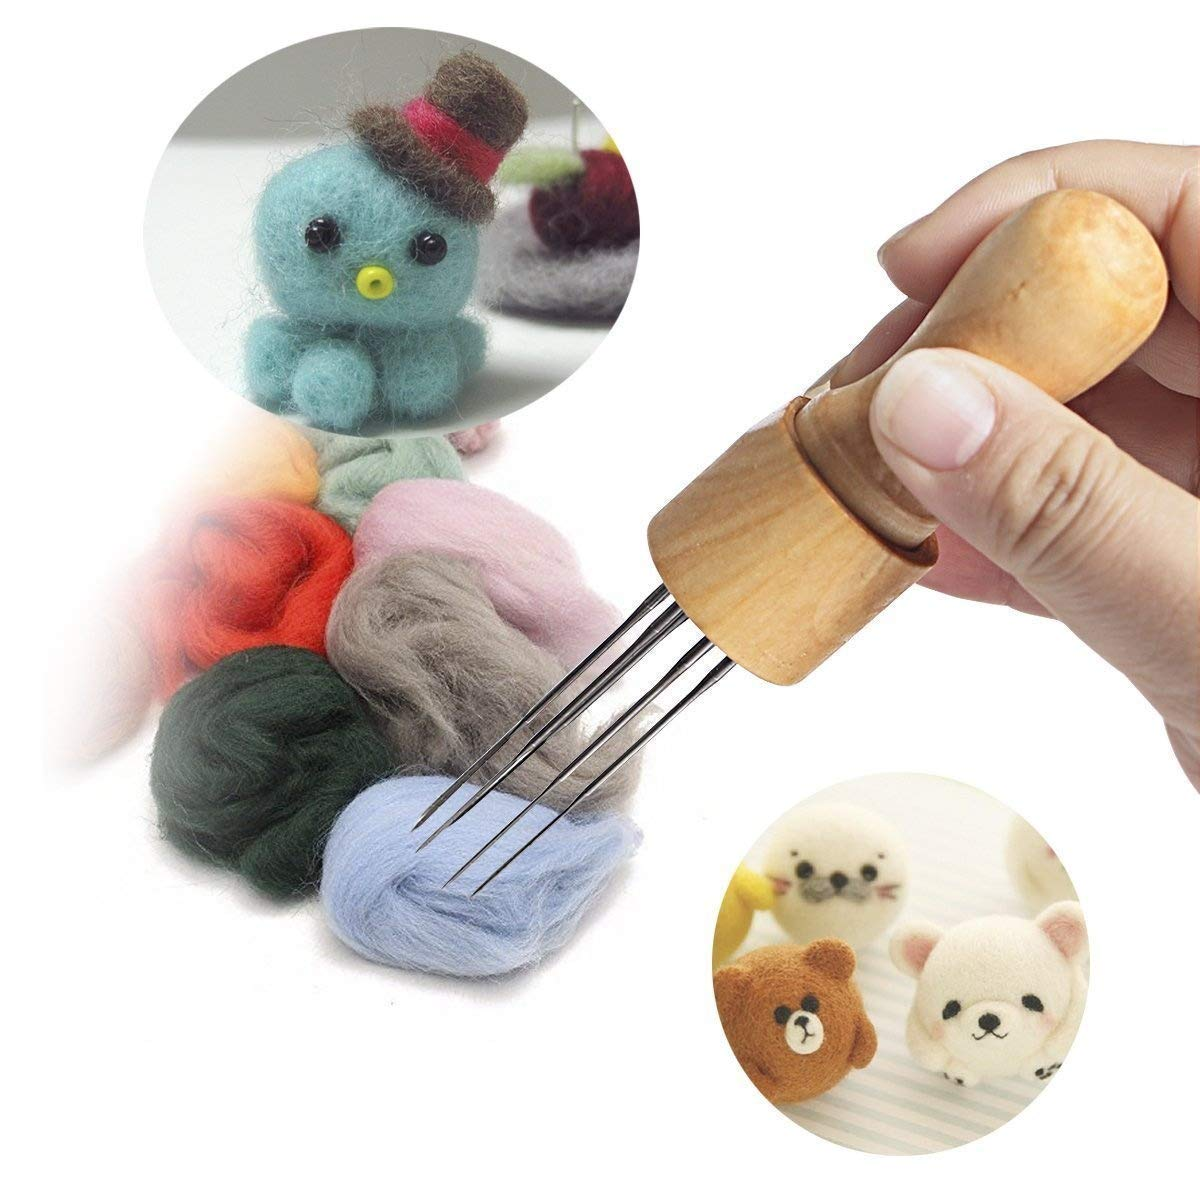 DIY Felting Needle with Eight Needles Tool Craft Wool Felt Stitch Punch Tool with Solid Wood Handle Felting More efficient Co-link 4336935778